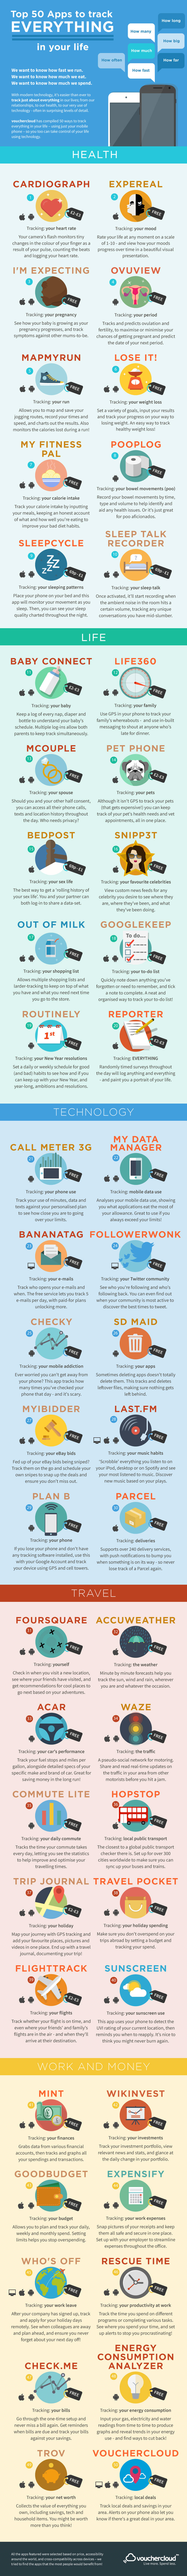 Apps That Track Every Single Thing You Do - Infographic